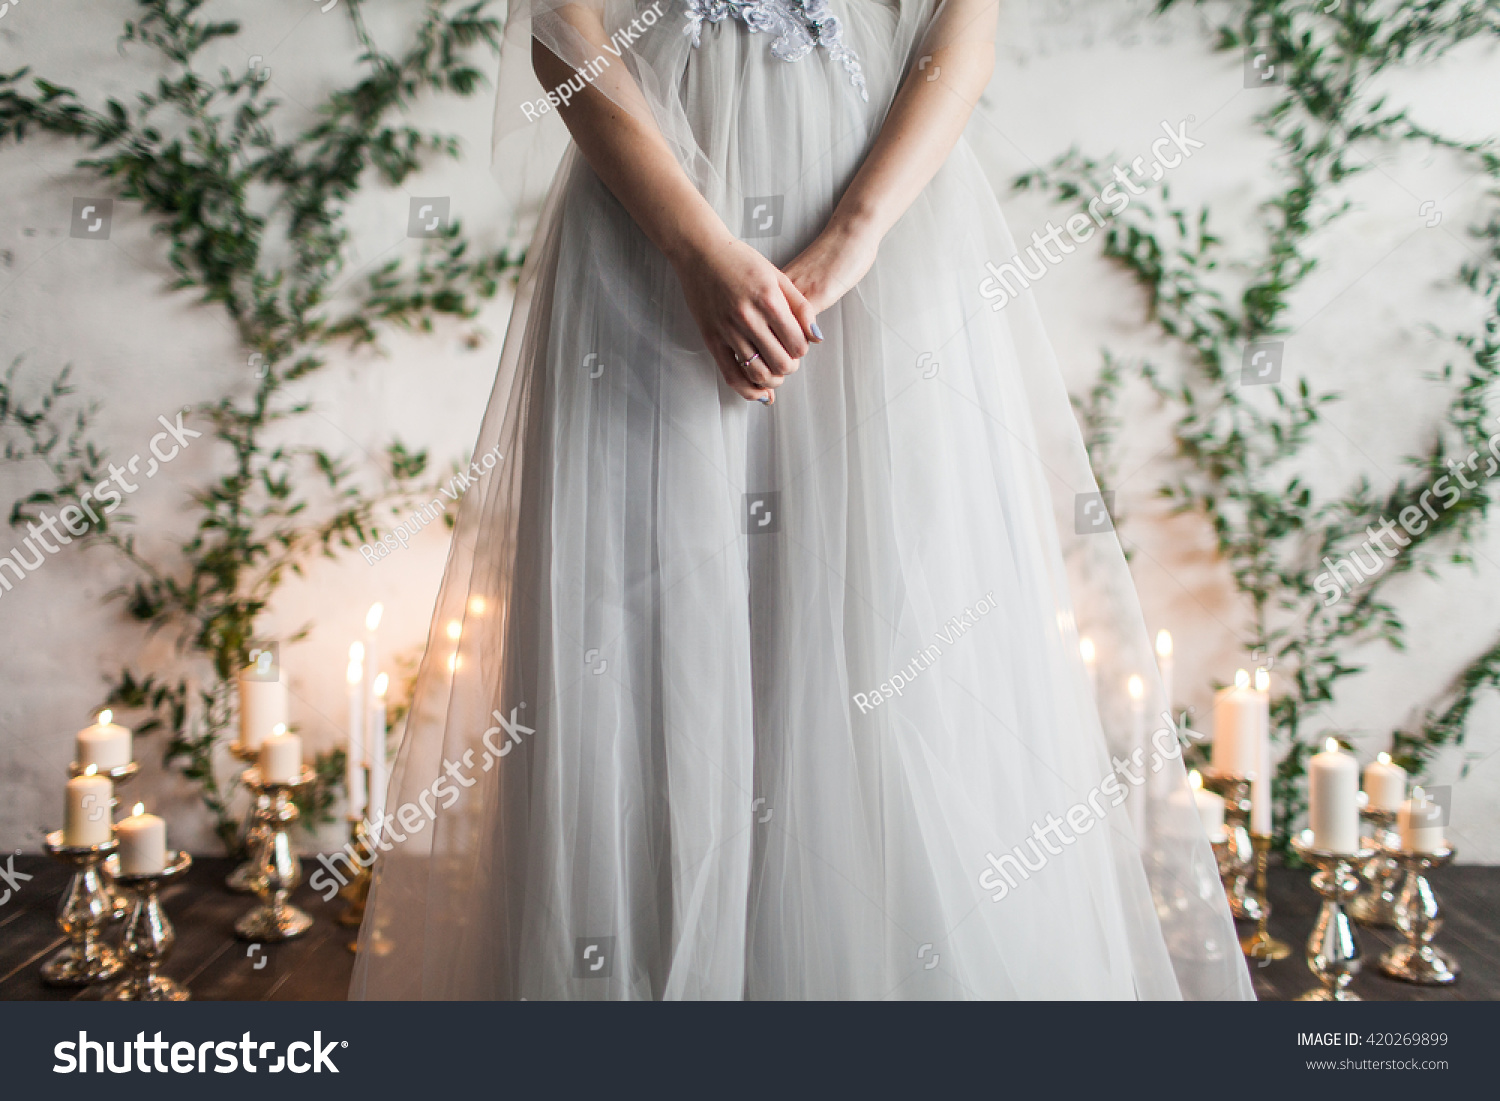 Wedding decor bride engagement girl wedding stock photo 420269899 decor bride engagement girl in a wedding dress crossed hands with amipublicfo Gallery